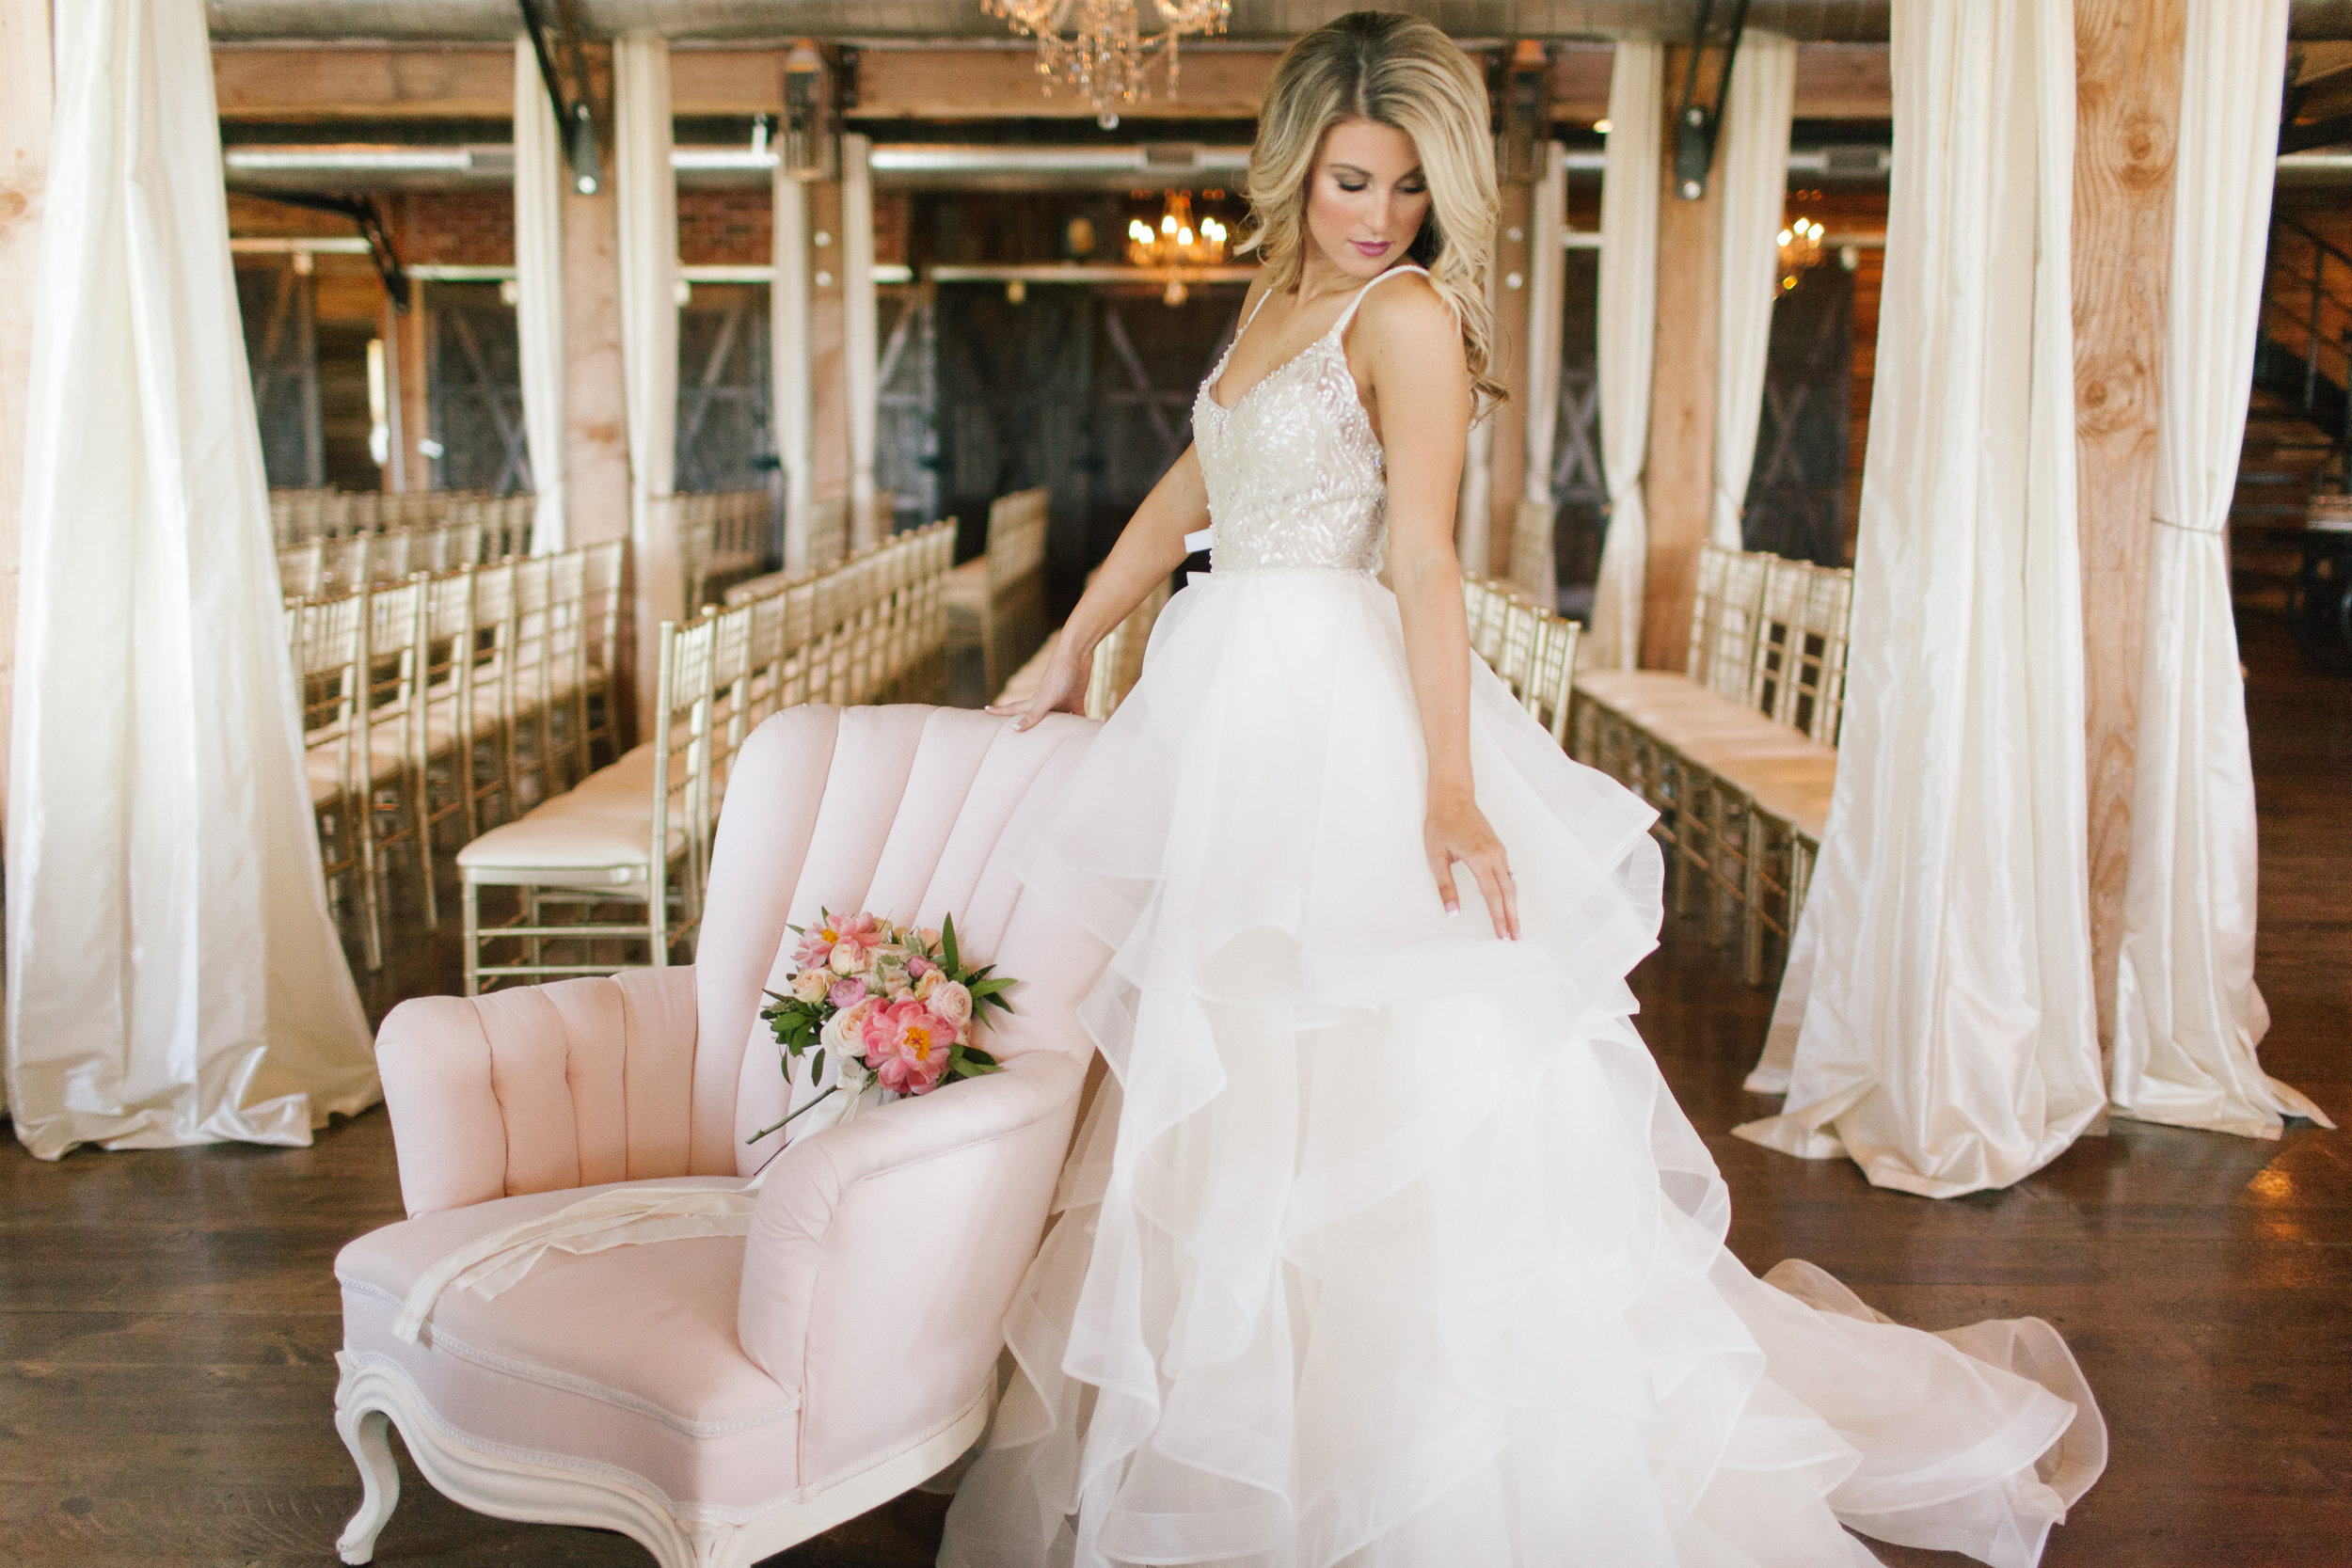 Bliss Celebration and Design Sweet Peach Bride, Kennedy Wedding Dress, Watters